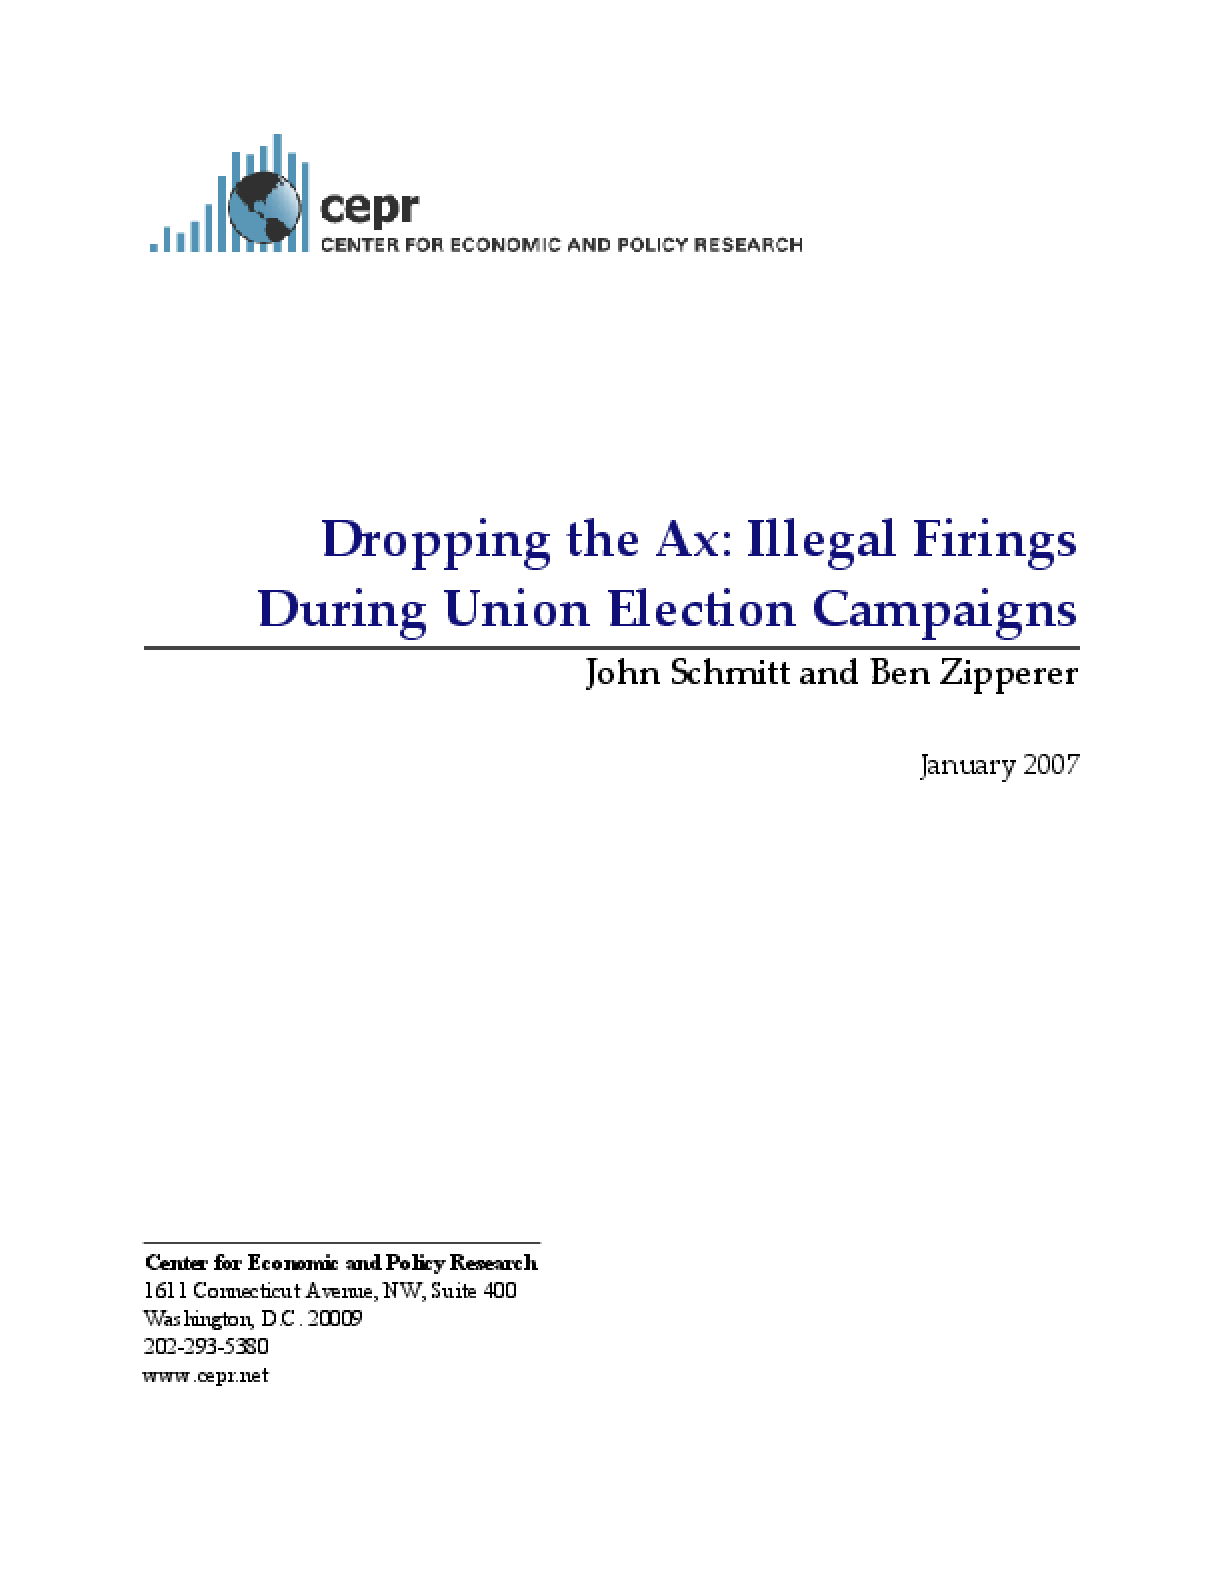 Dropping the Ax: Illegal Firings During Union Election Campaigns